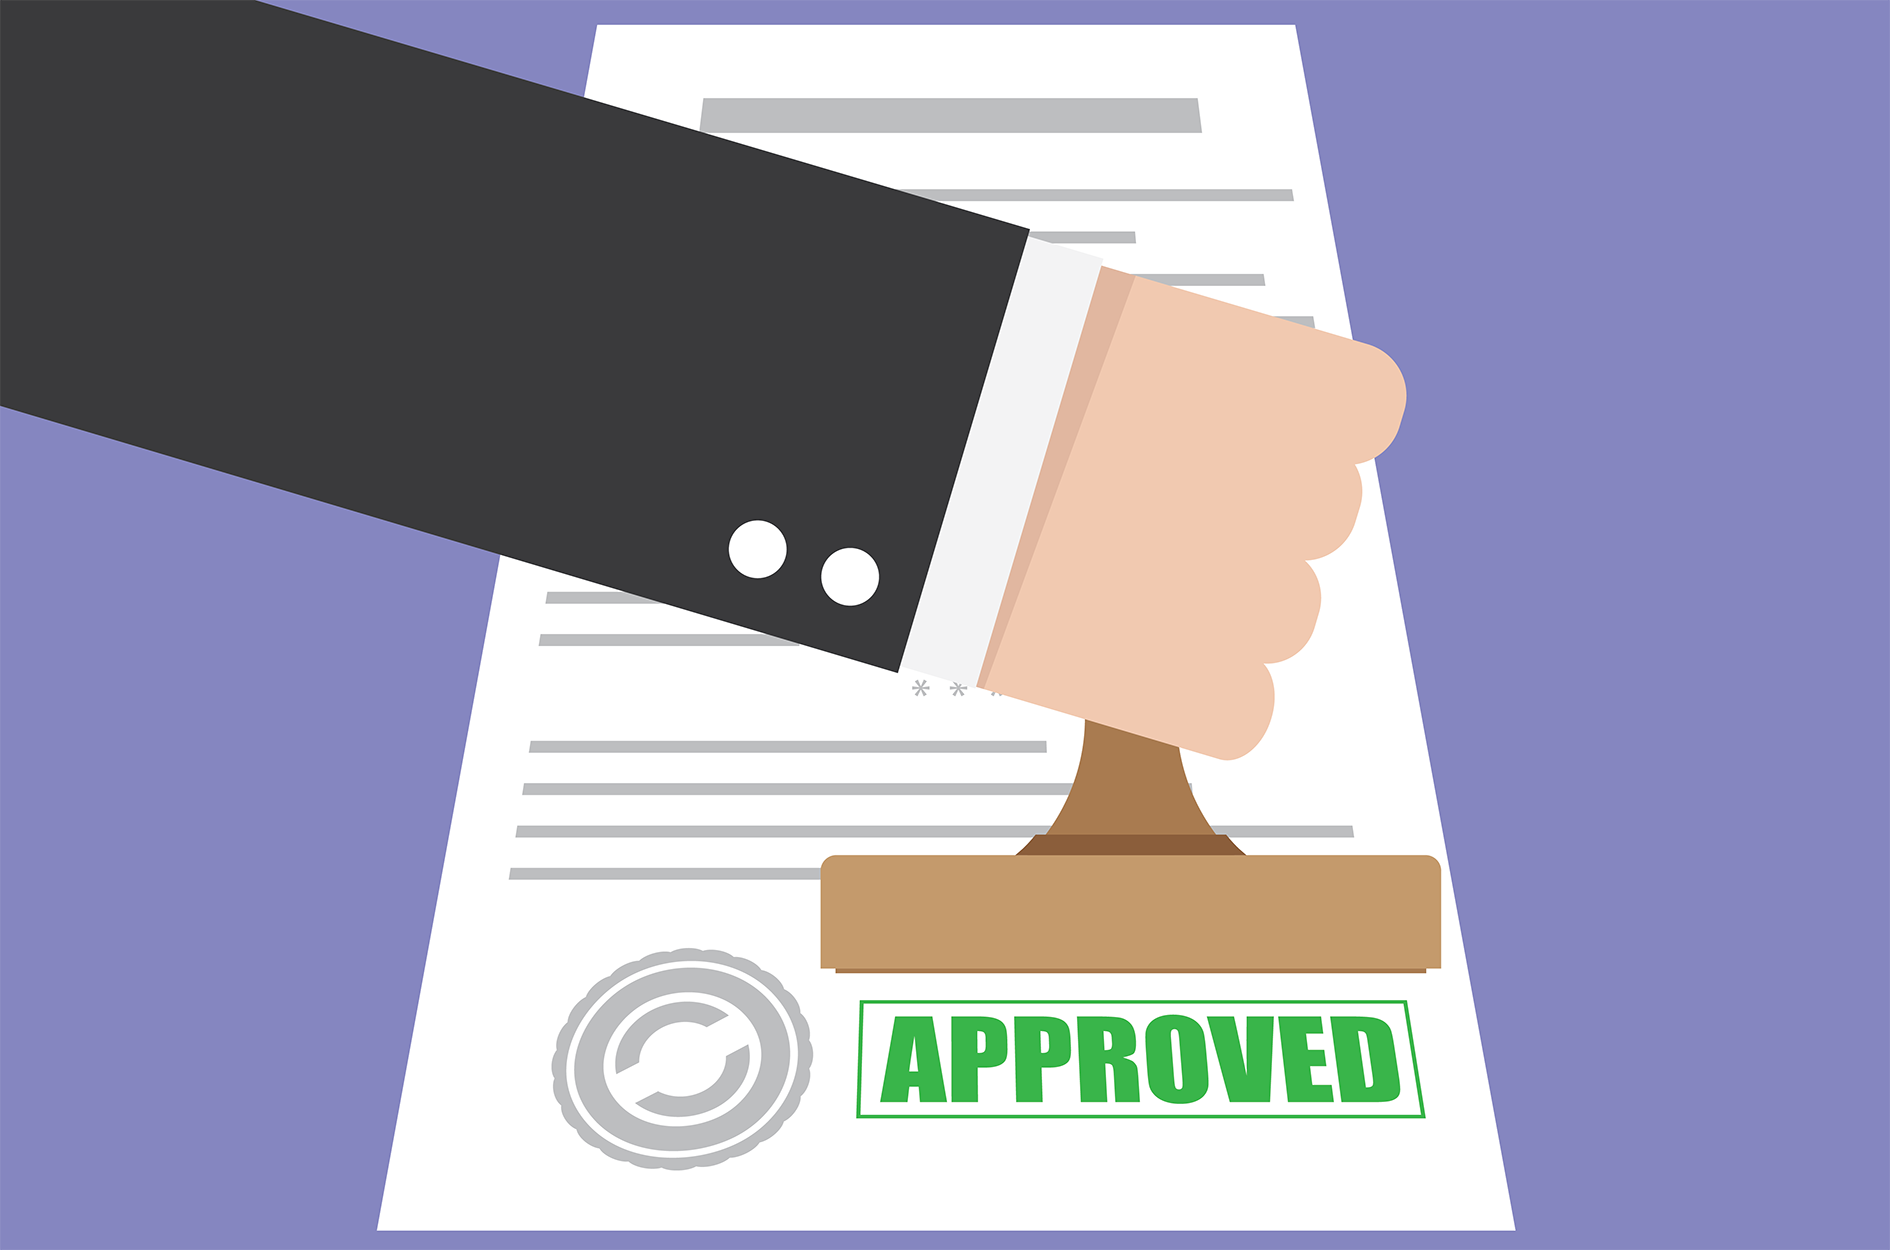 Approval Vector Image